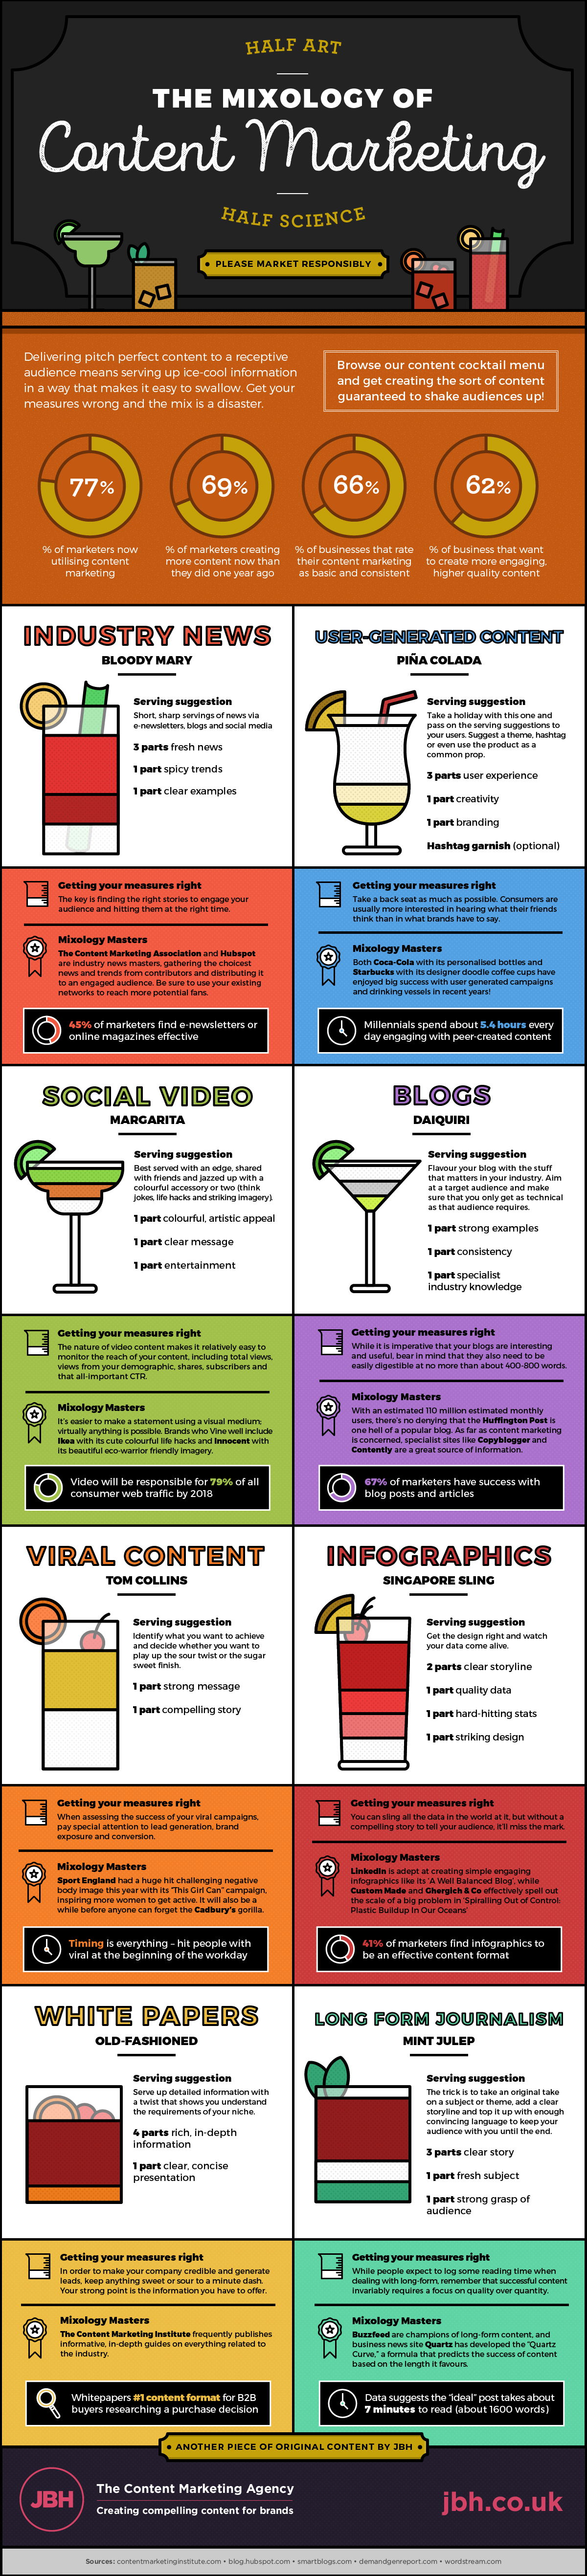 Infographie | The mixology of content marketing